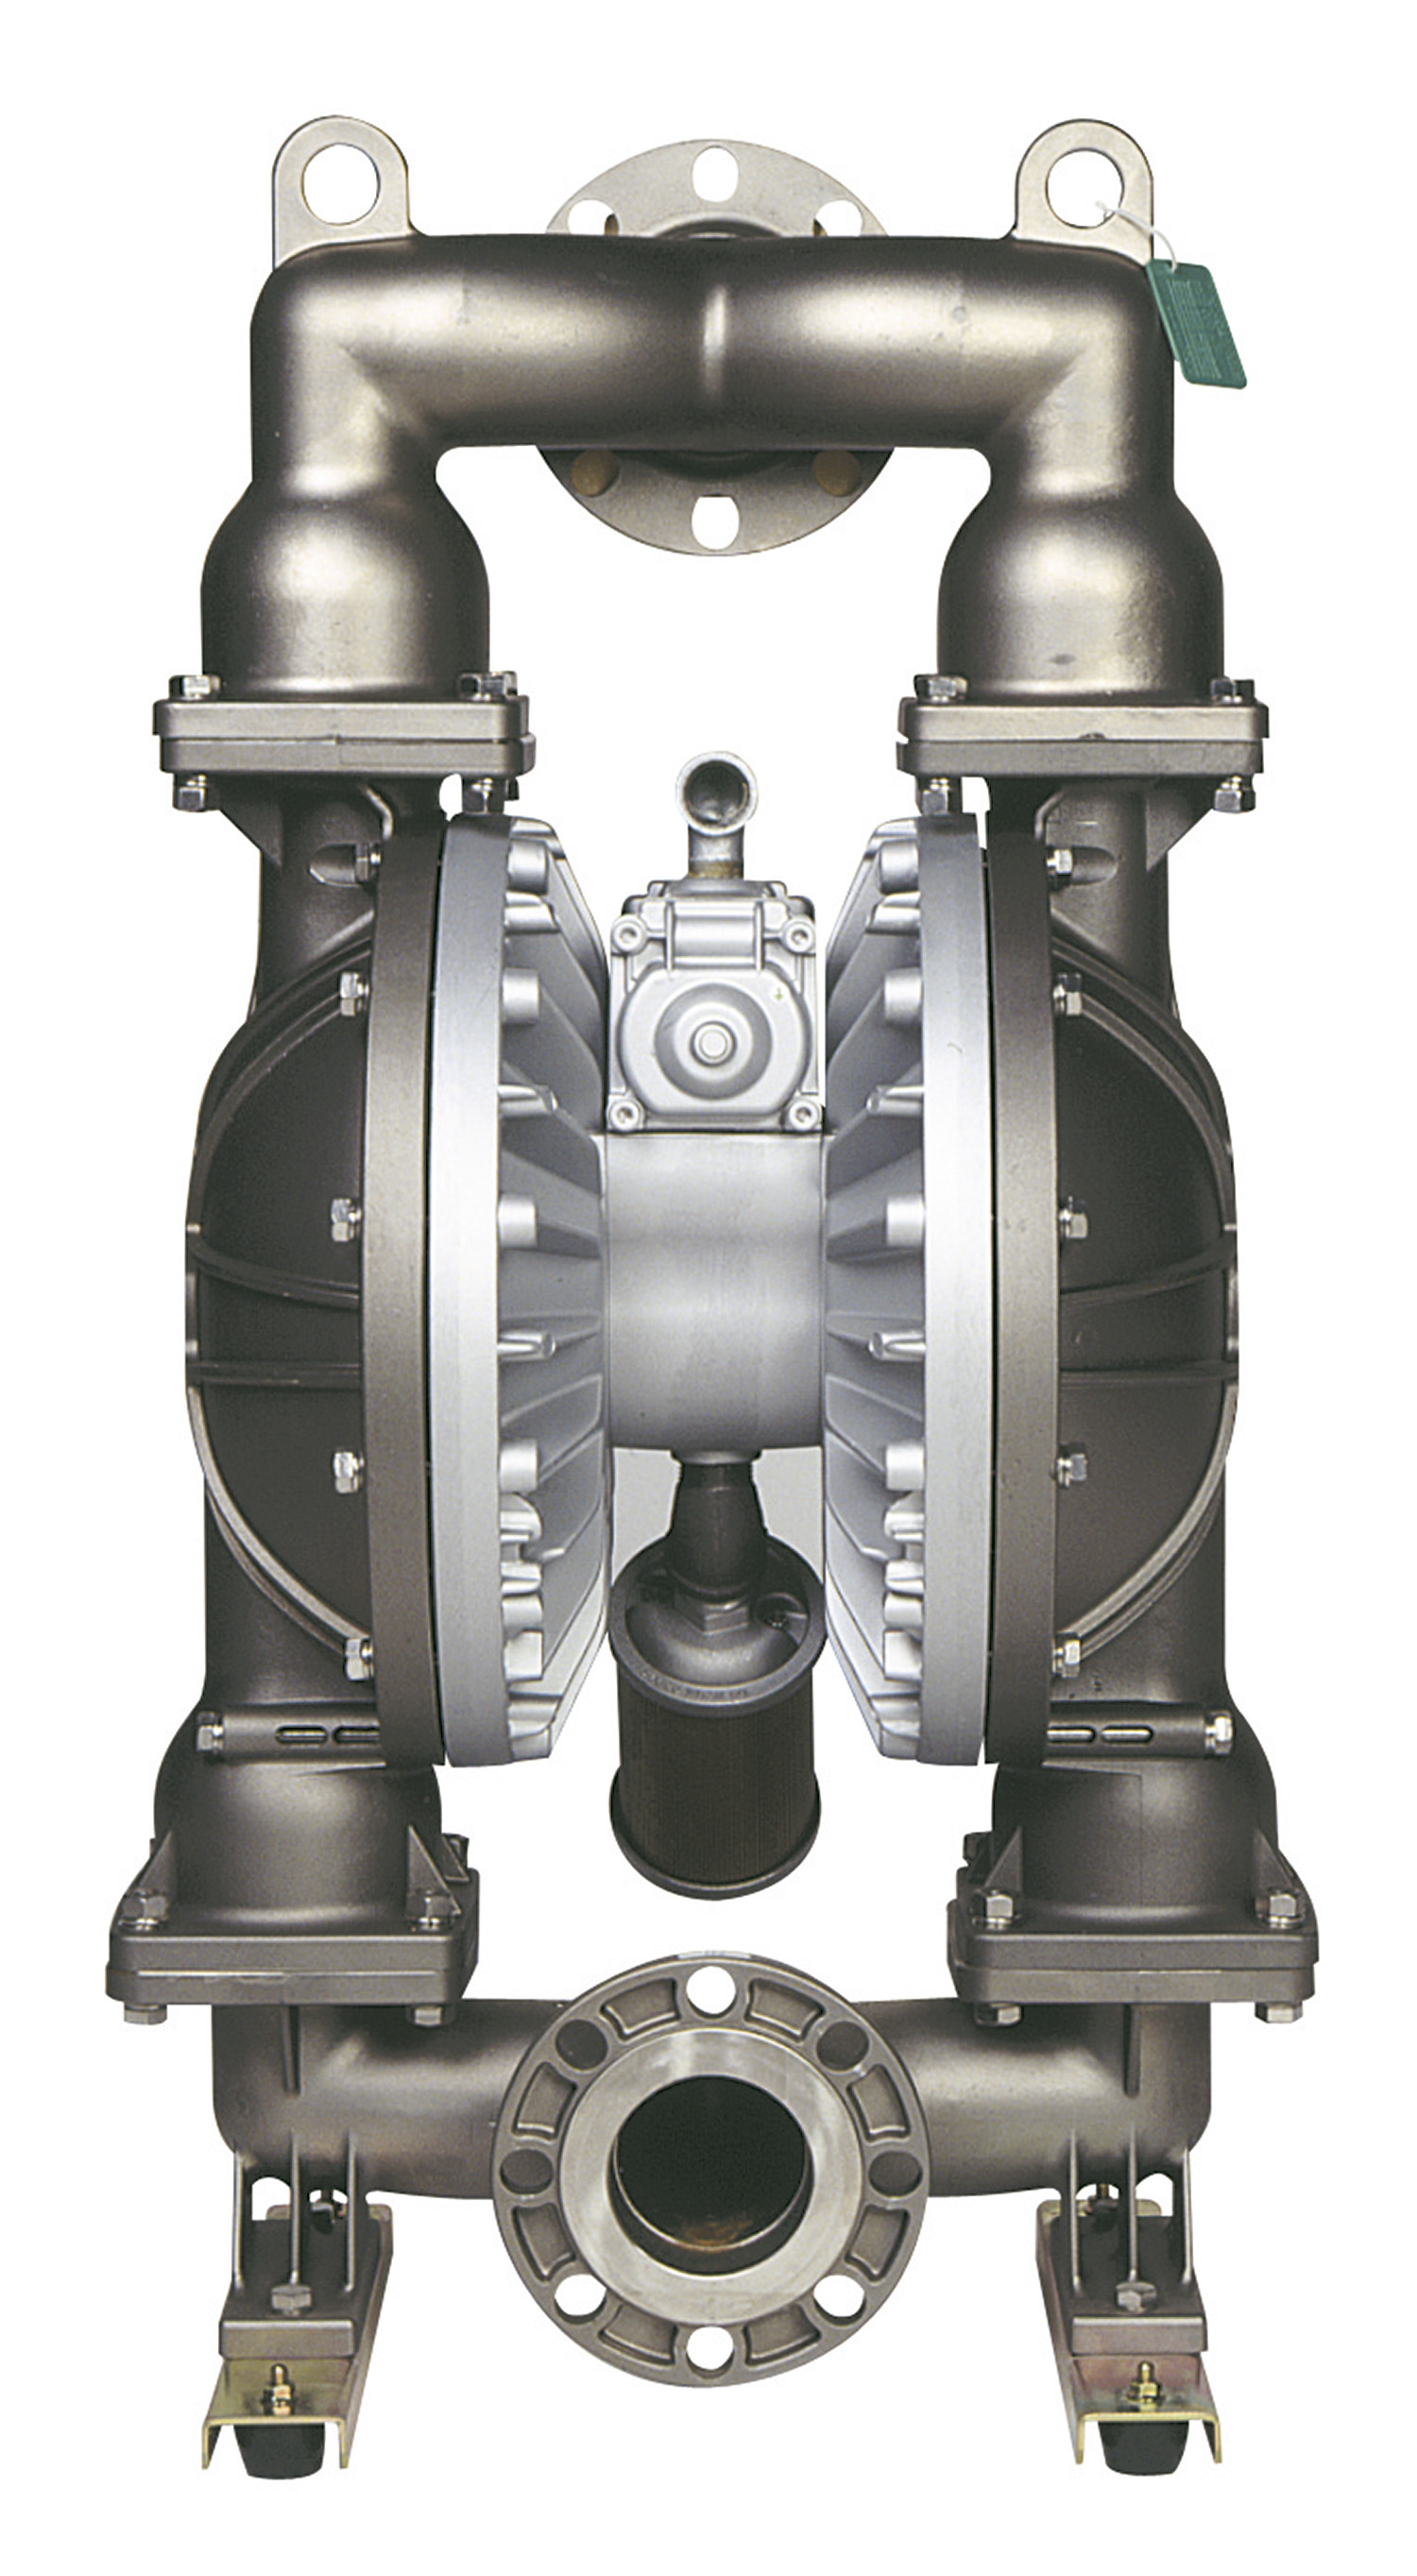 Yamada ndp 80 series 3 inch pumps fast from reliable equipment related products more pumps parts ccuart Choice Image